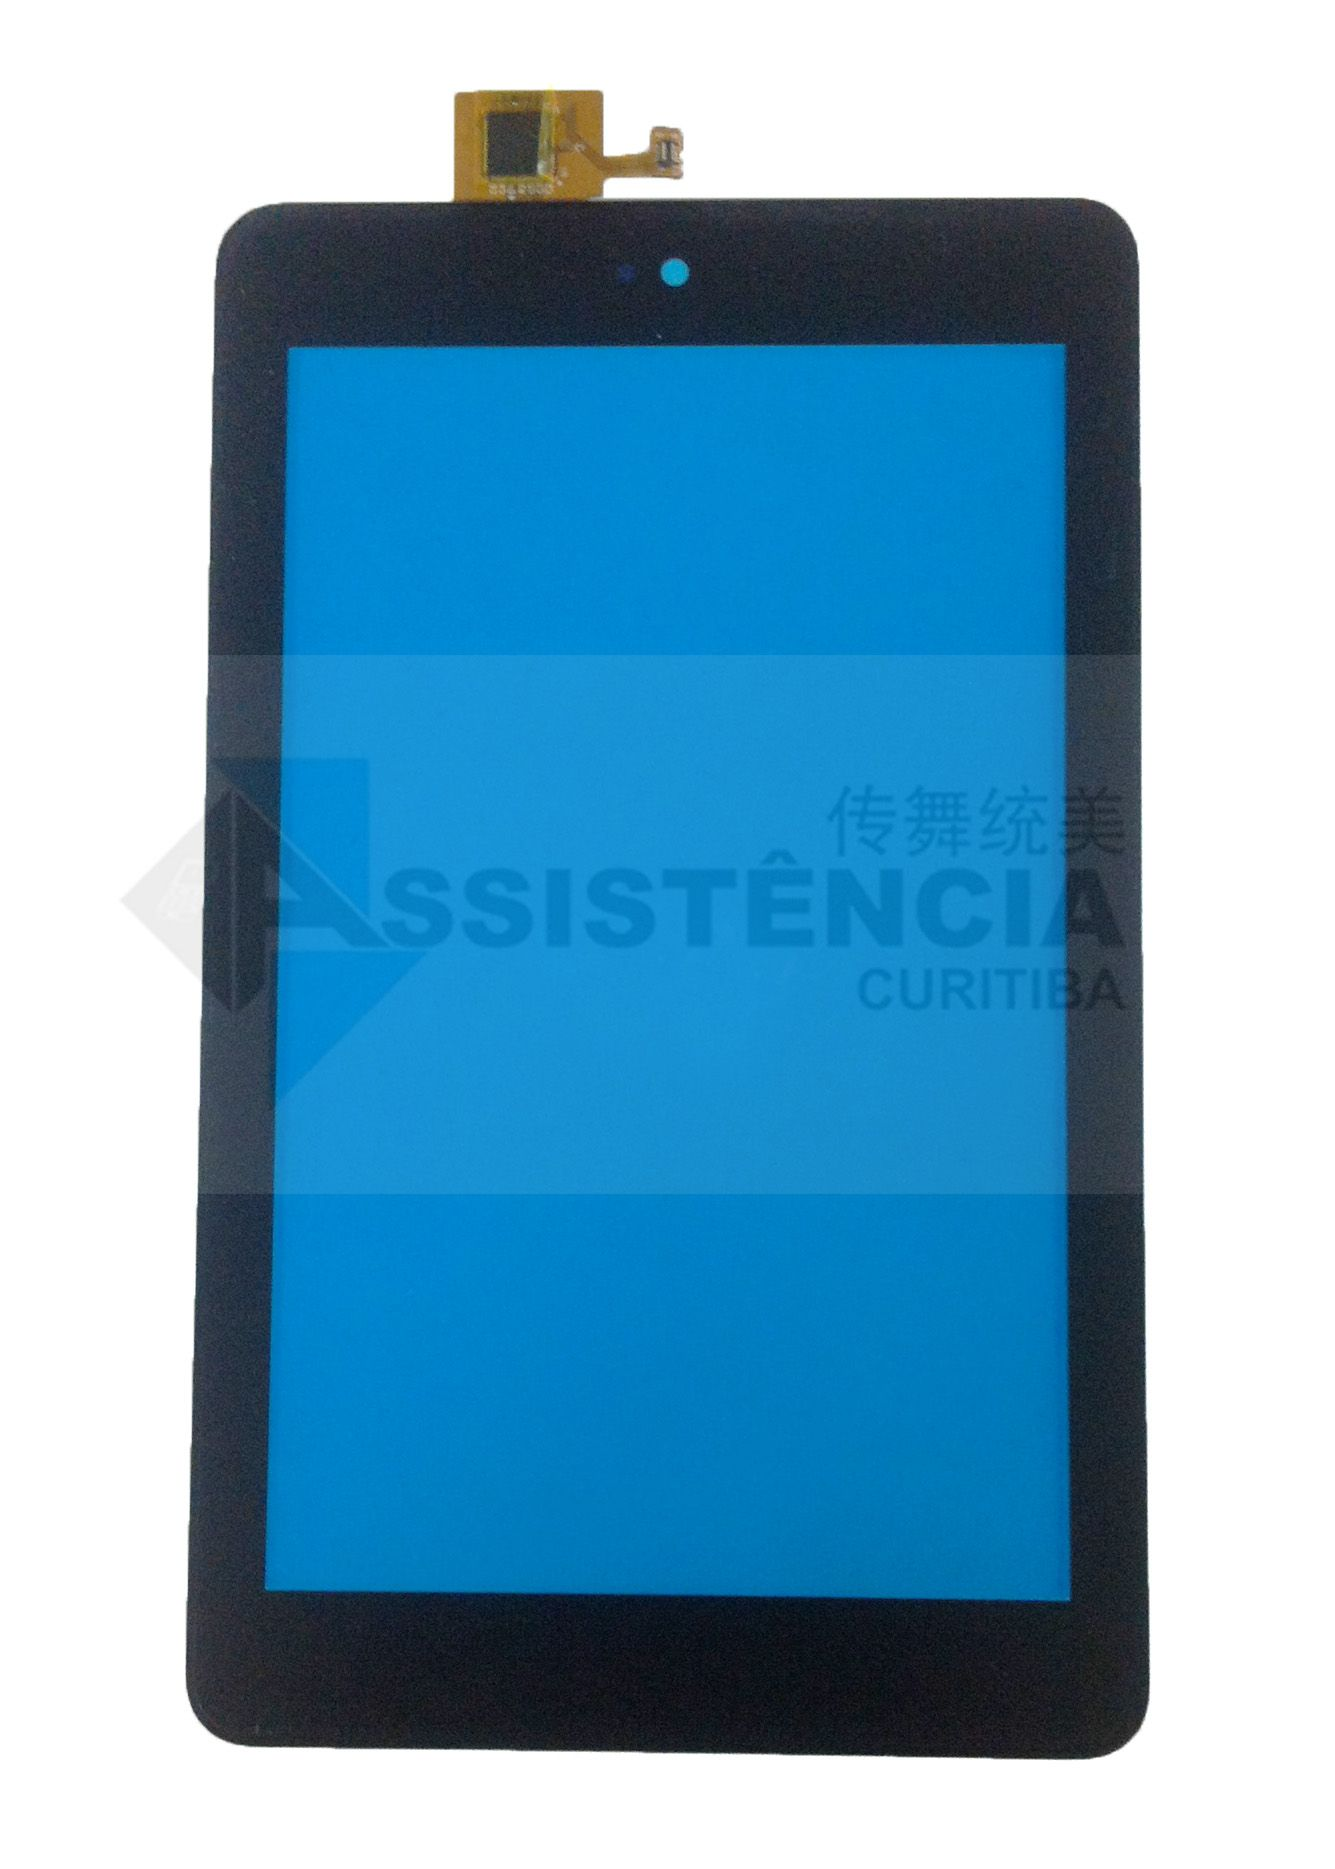 Tela Touch Tablets Dell Diversos Modelos